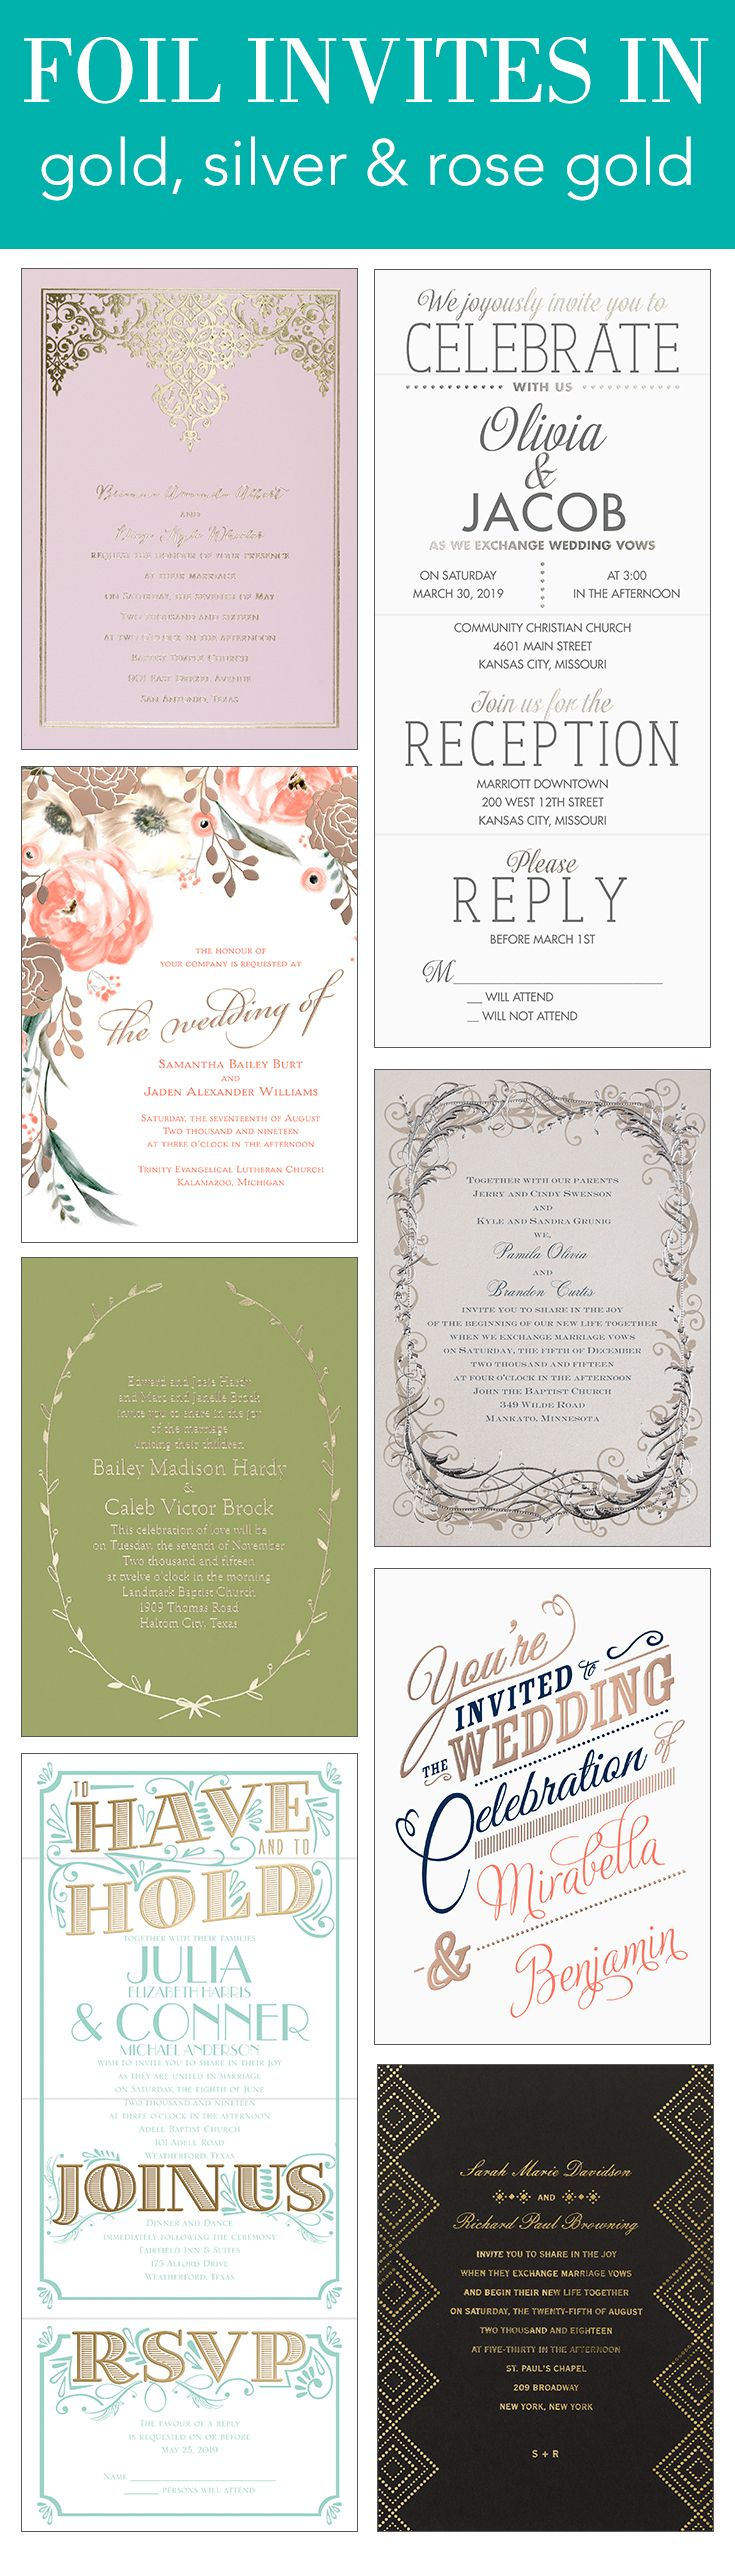 Foil wedding invites you won't find anywhere else. Stunning designs from David Tutera, Colin Cowie and more in Gold, Rose Gold & Silver.